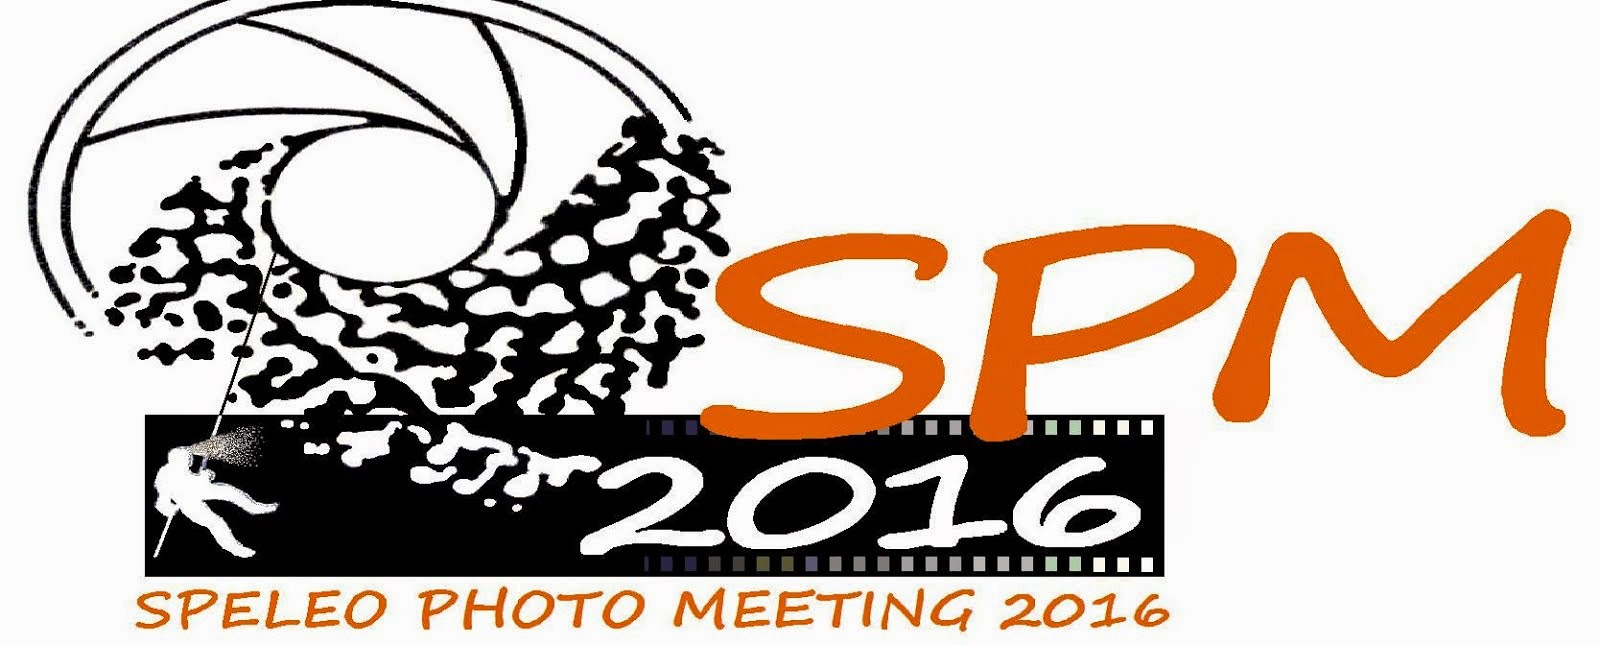 SPELEO PHOTO MEETING 2016